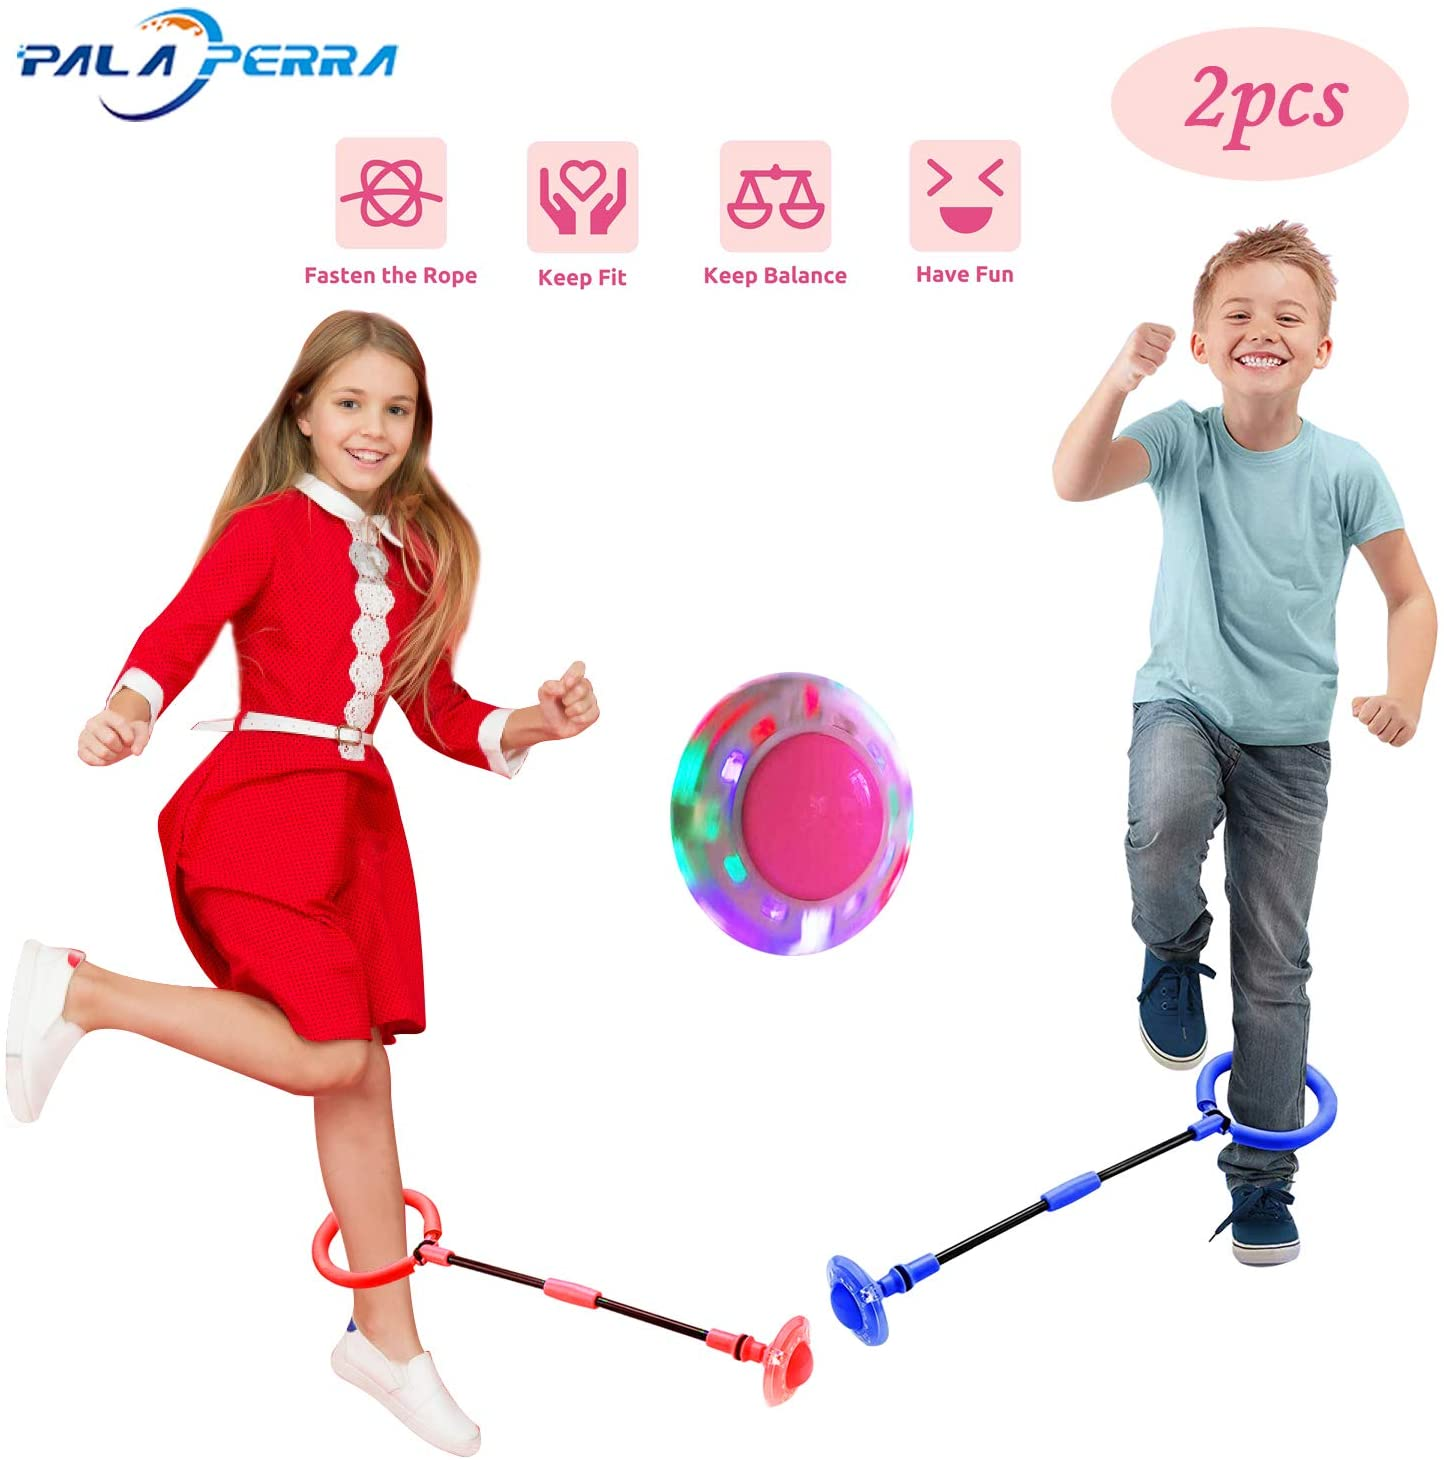 PALA PERRA Ankle Skip Ball for Kids, Colorful Light Flashing Jumping Ring, Foldable Skipit Toy Swing Ball Fitness Sports for Boys and Girls (Two Colors)